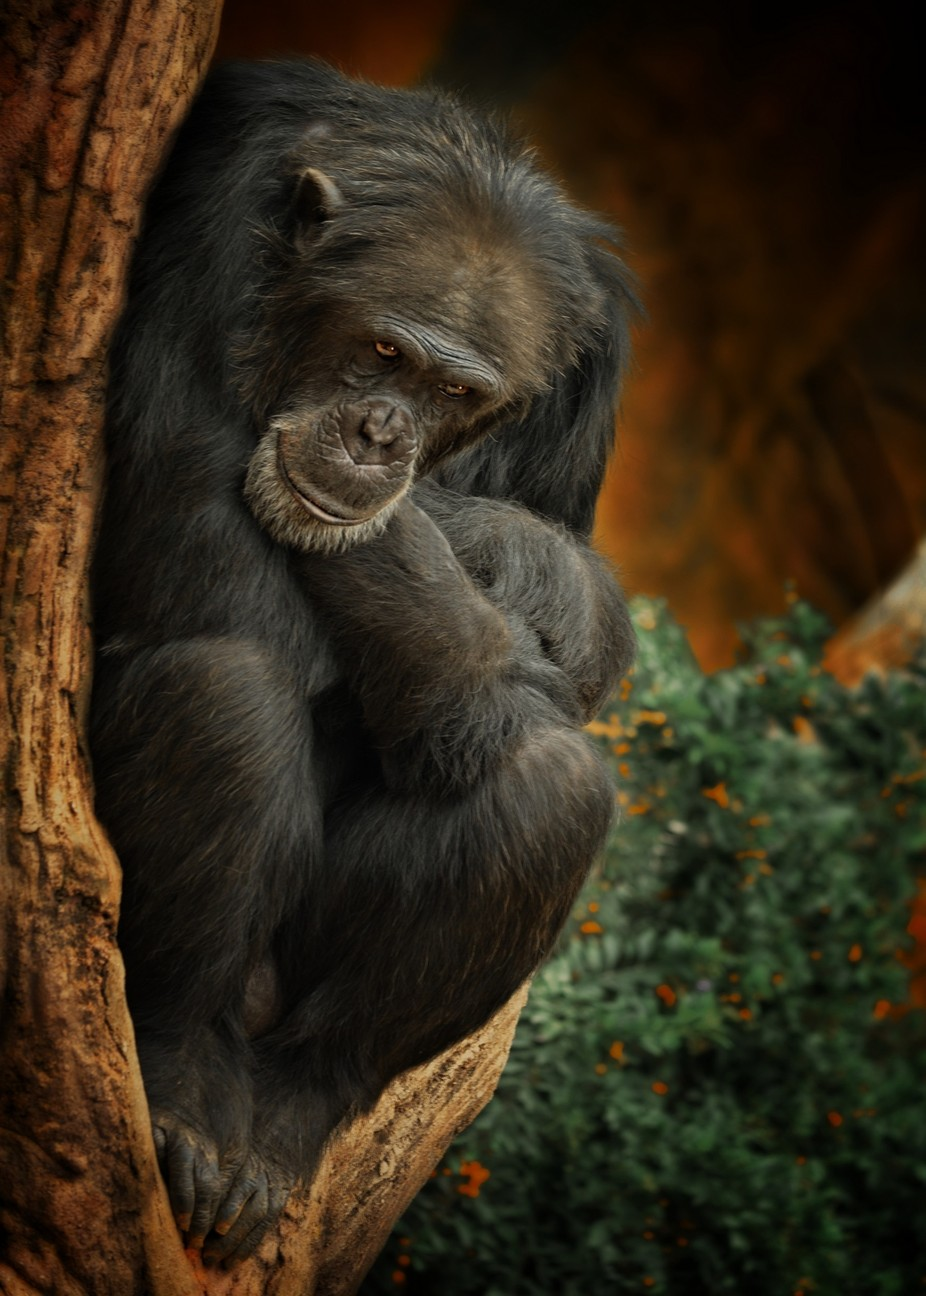 Pensive Primate by Hood - Celebrating Earth Day Photo Contest 2019